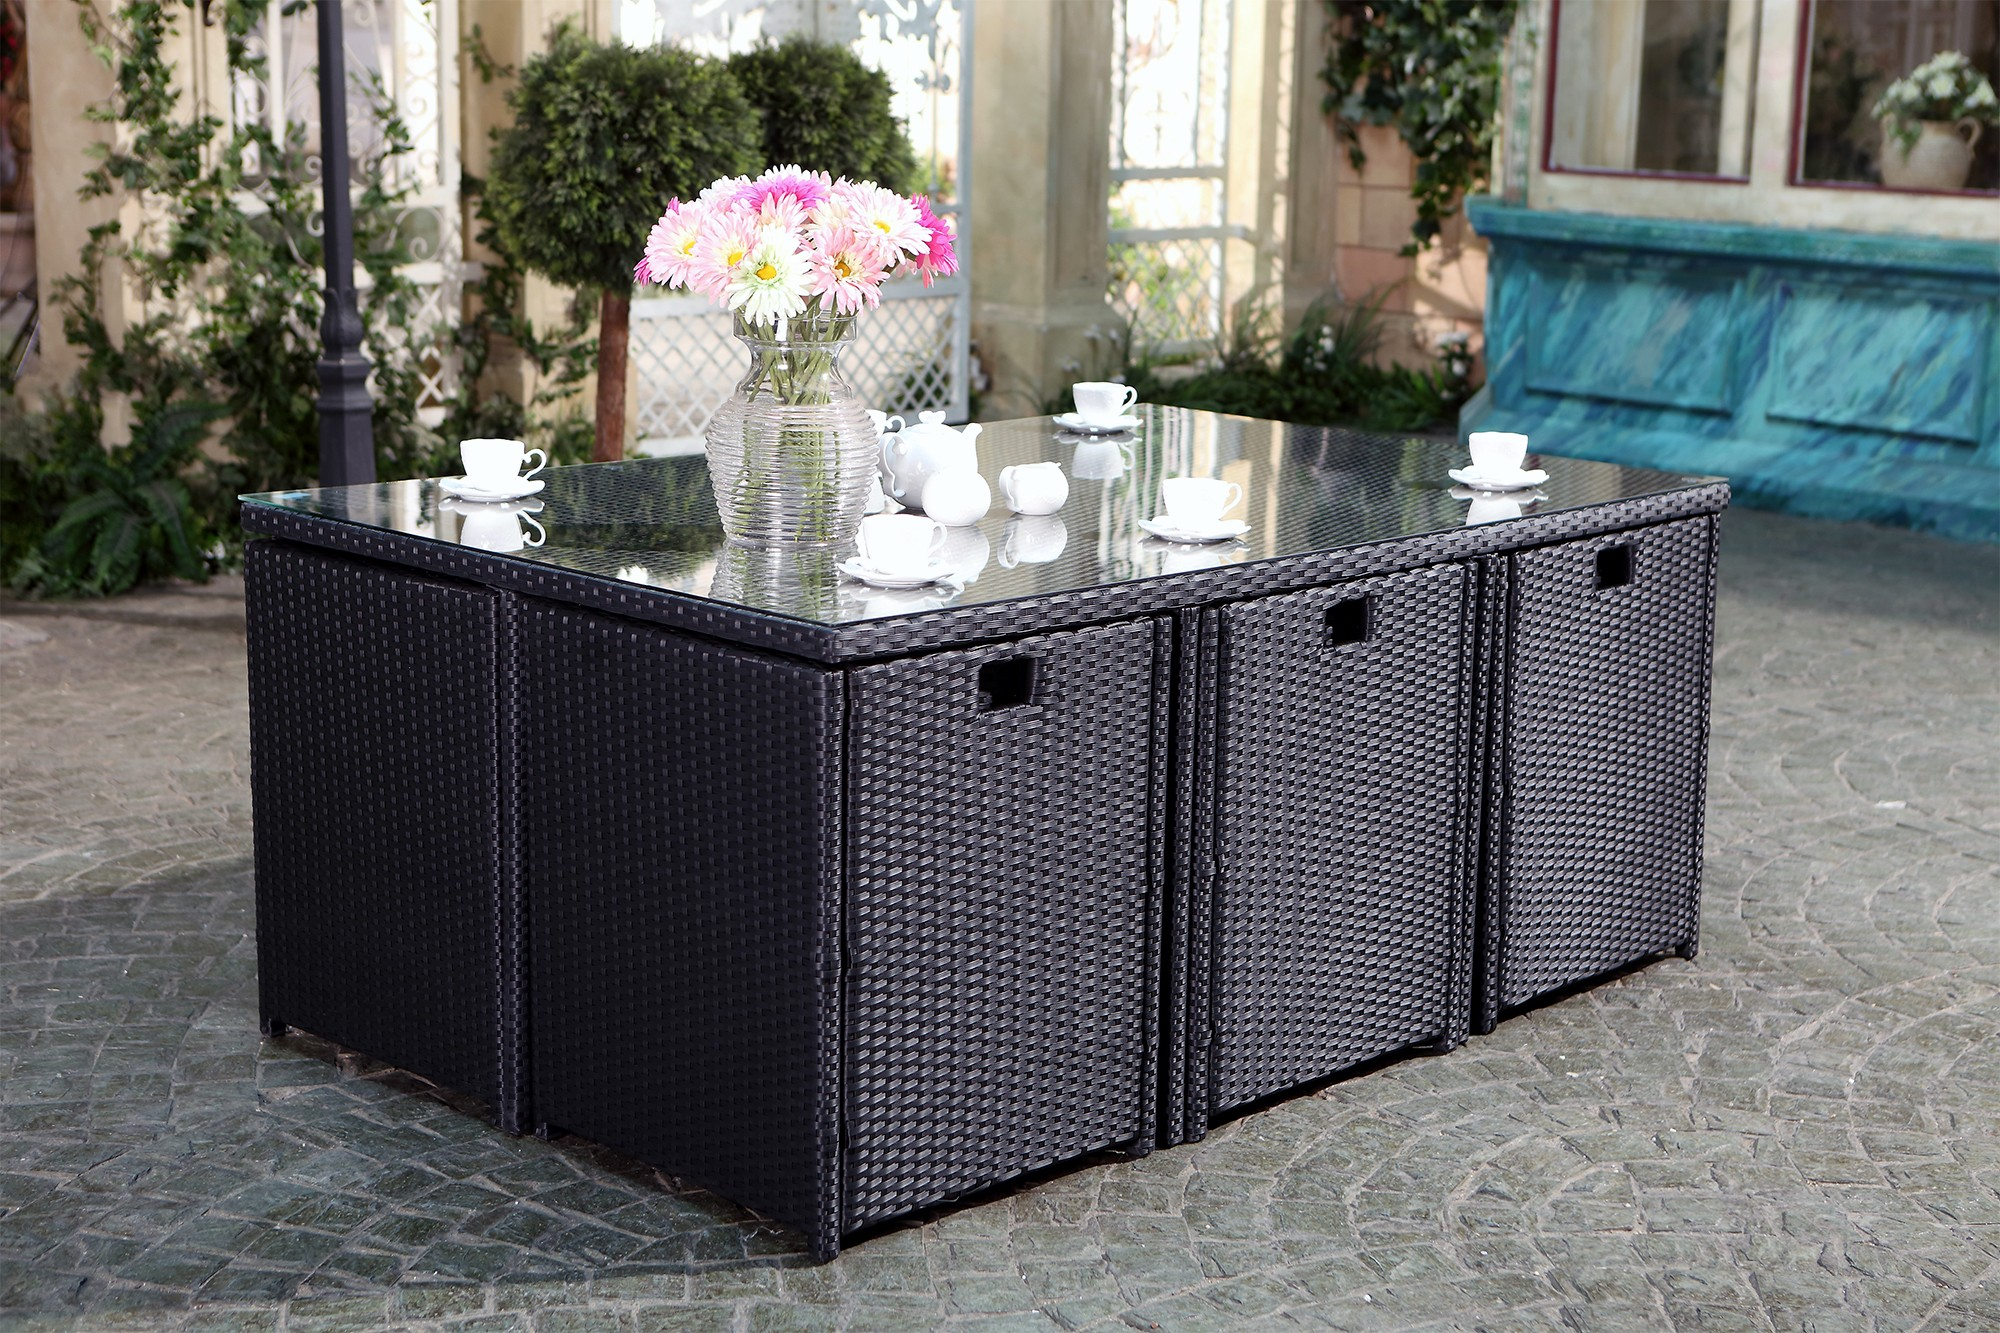 table tofino 6 10 noir salons de jardin en r sine tress e salons de jardin. Black Bedroom Furniture Sets. Home Design Ideas